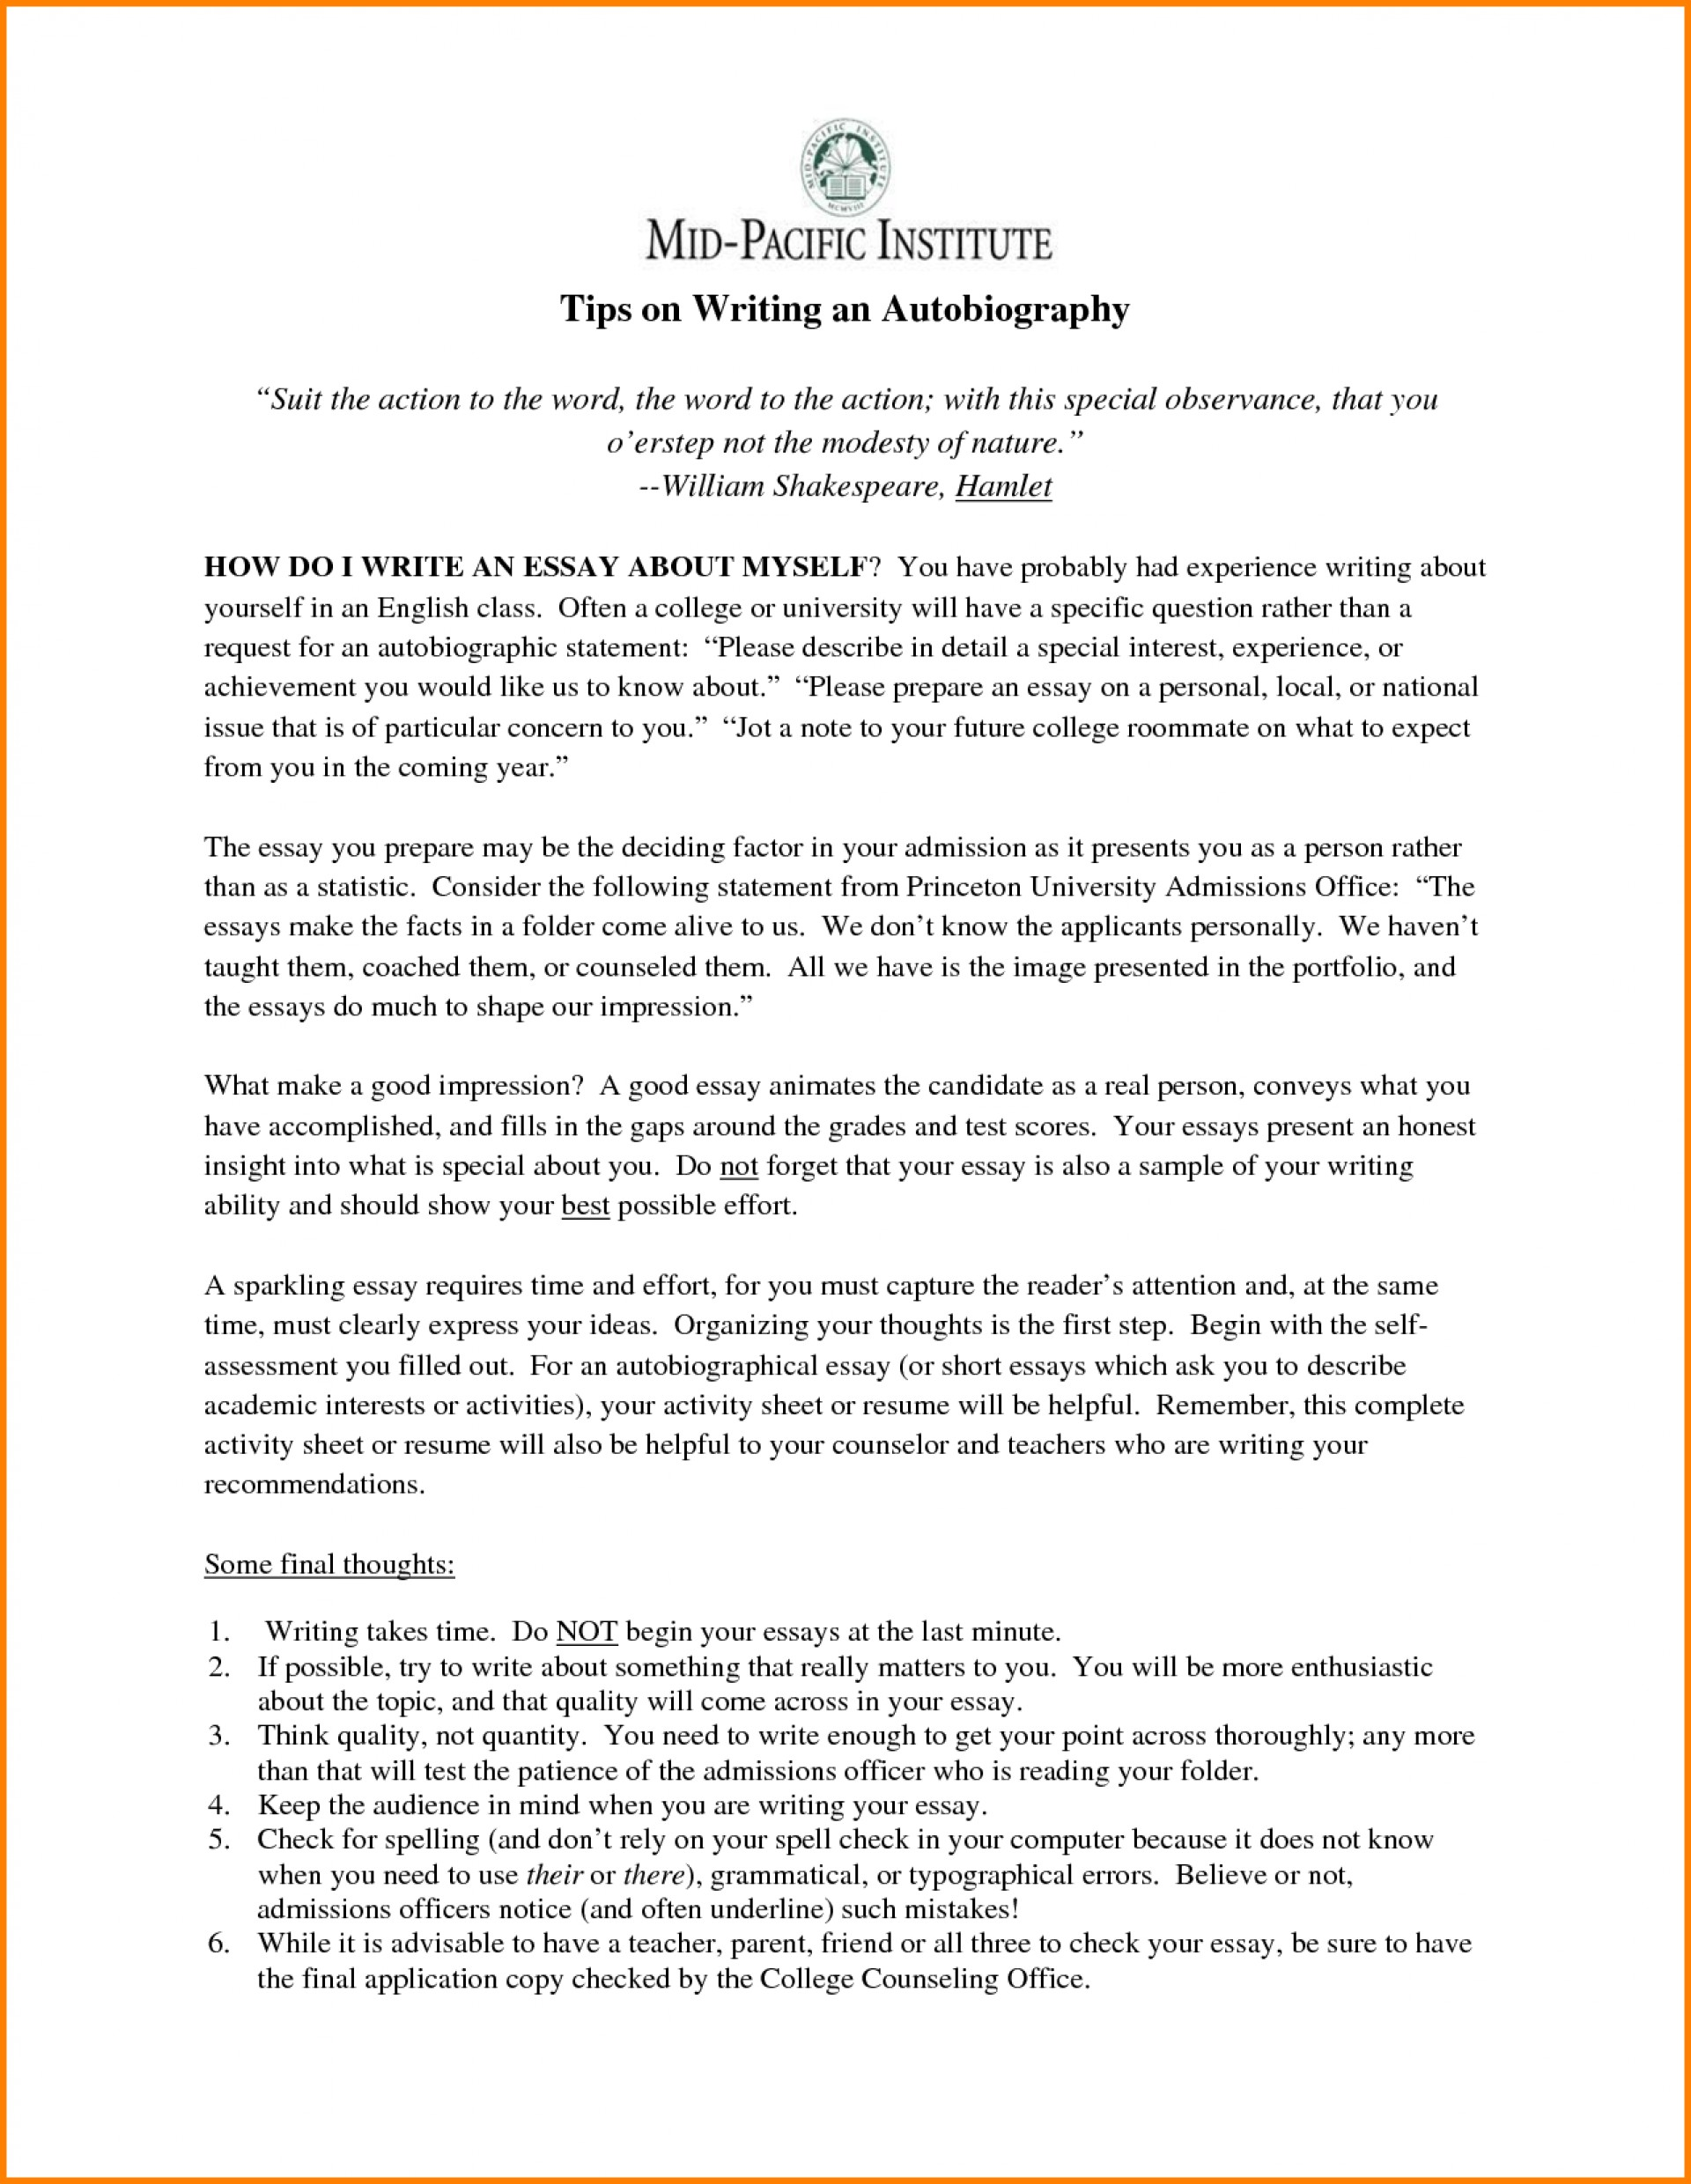 013 Best Solutions Of Tips On Writing Narrative Essay How To Start College Spectacular Write Application Outline Breathtaking An Argumentative Example About Yourself For Scholarship Analysis A Book 1920